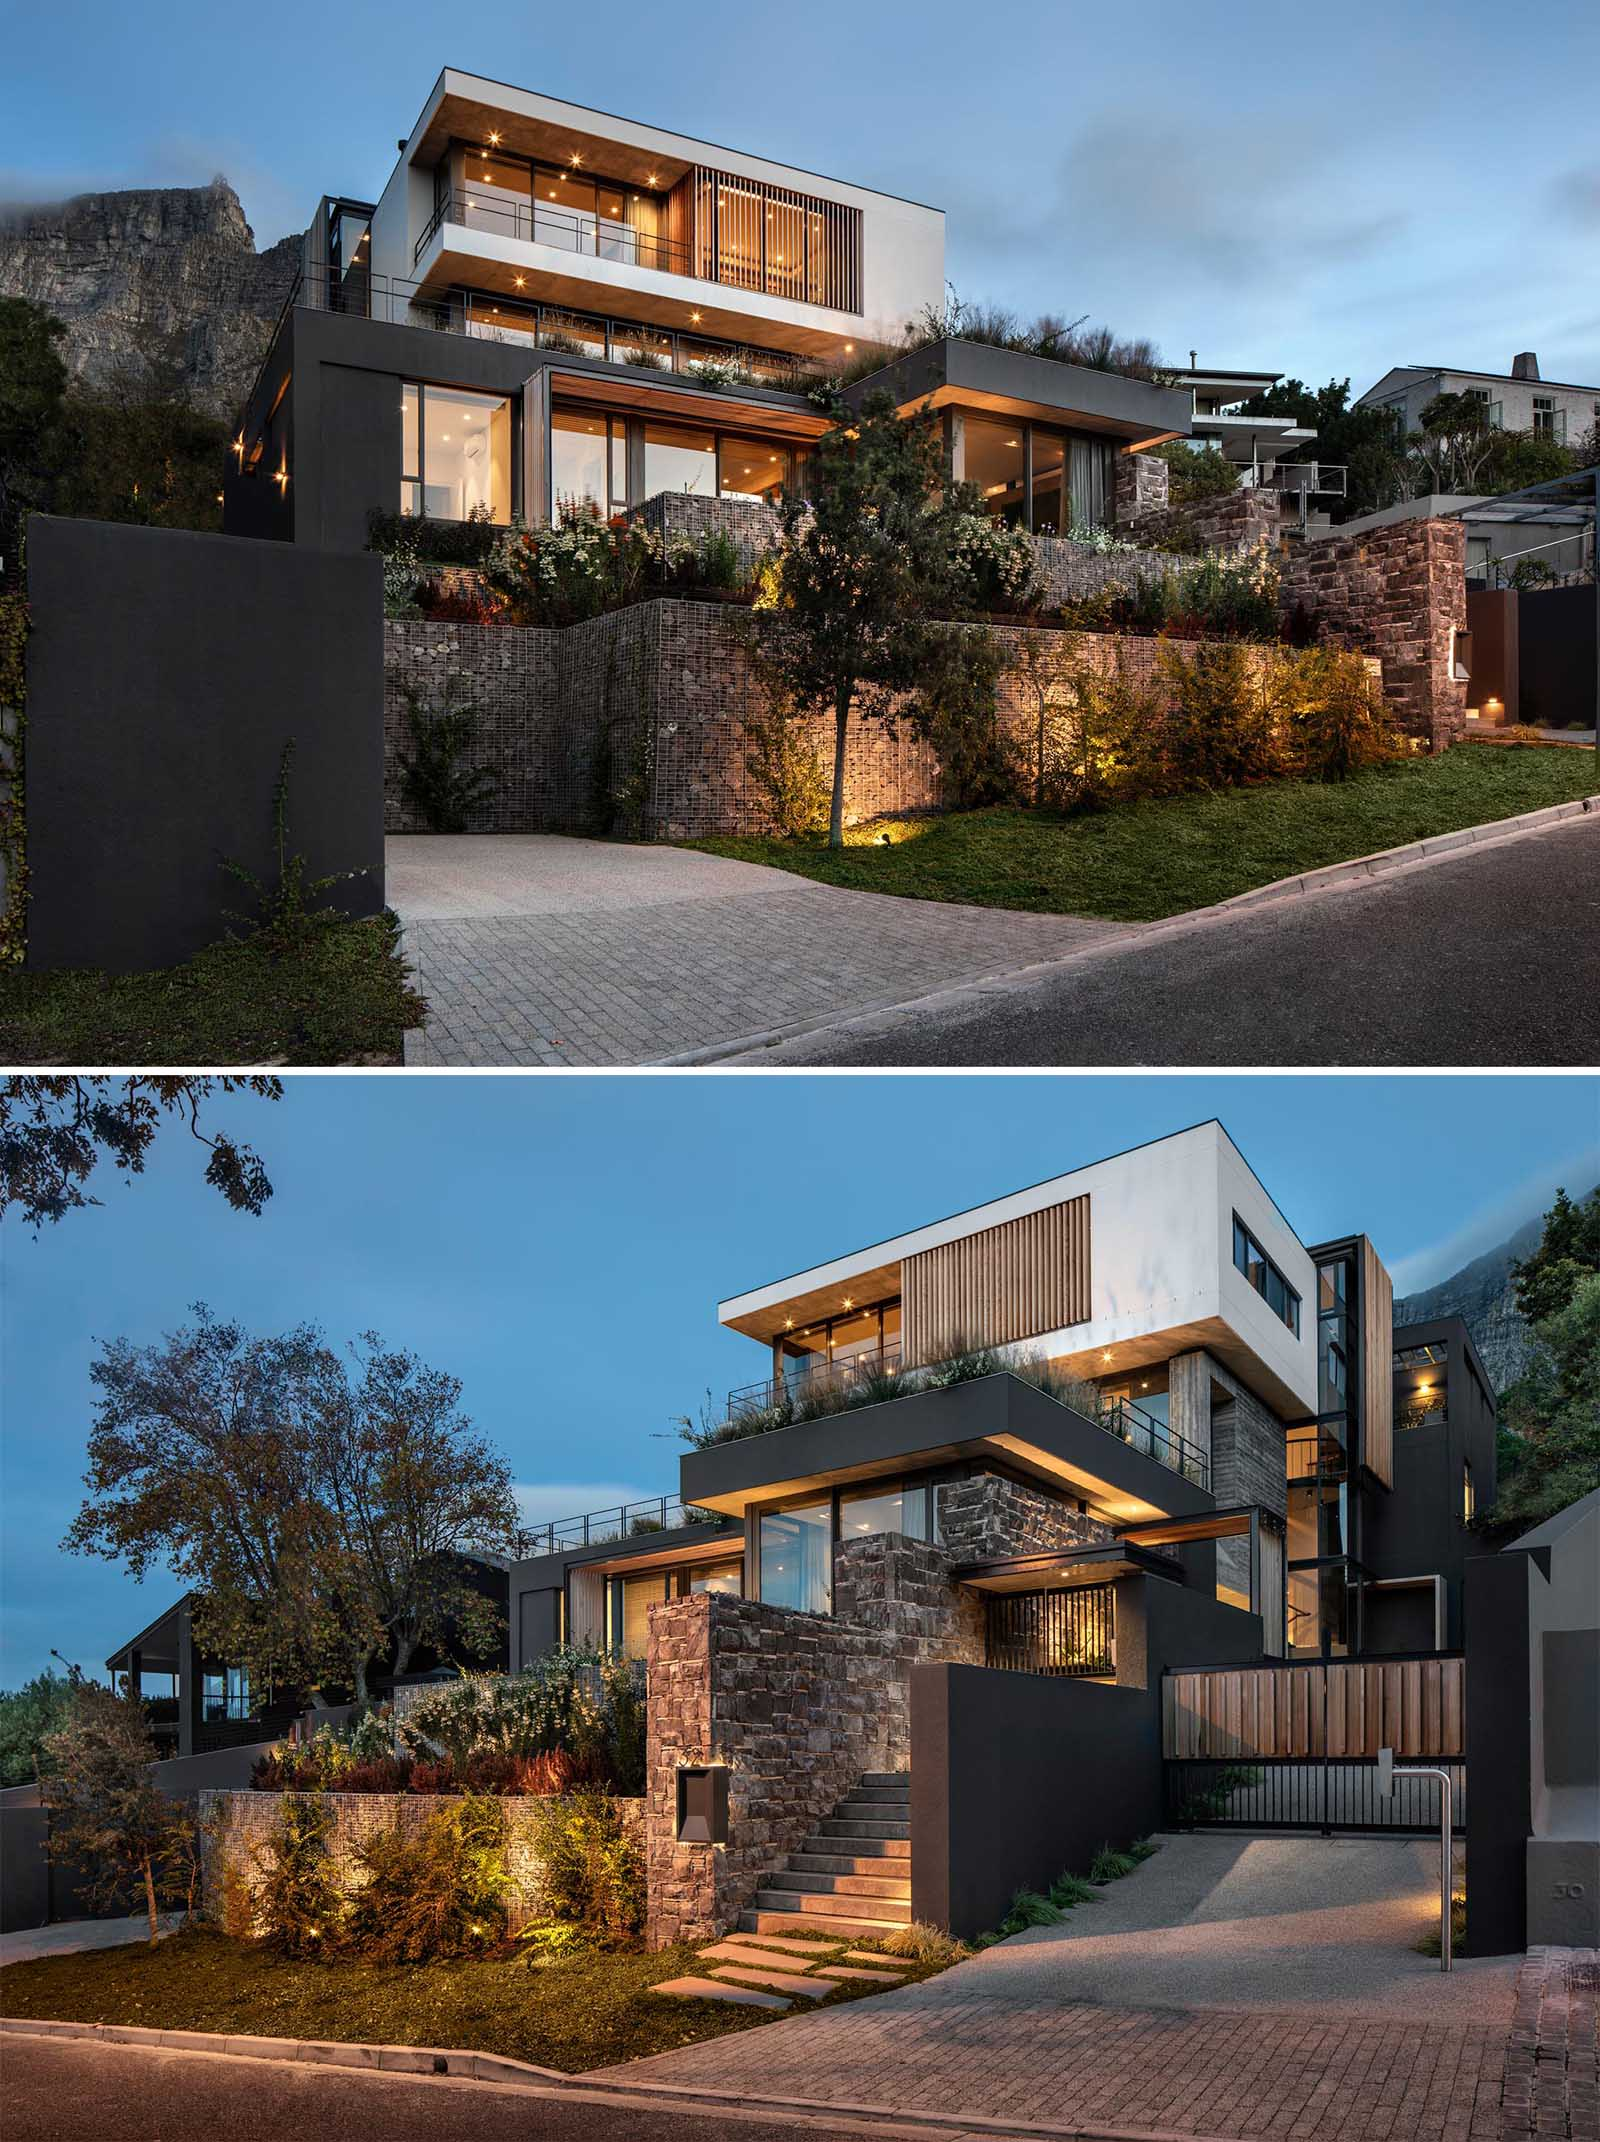 Stone and gabion walls with plants are lit up by exterior lighting at the front of this modern home, while wood slats add a natural element on the upper level of the home.